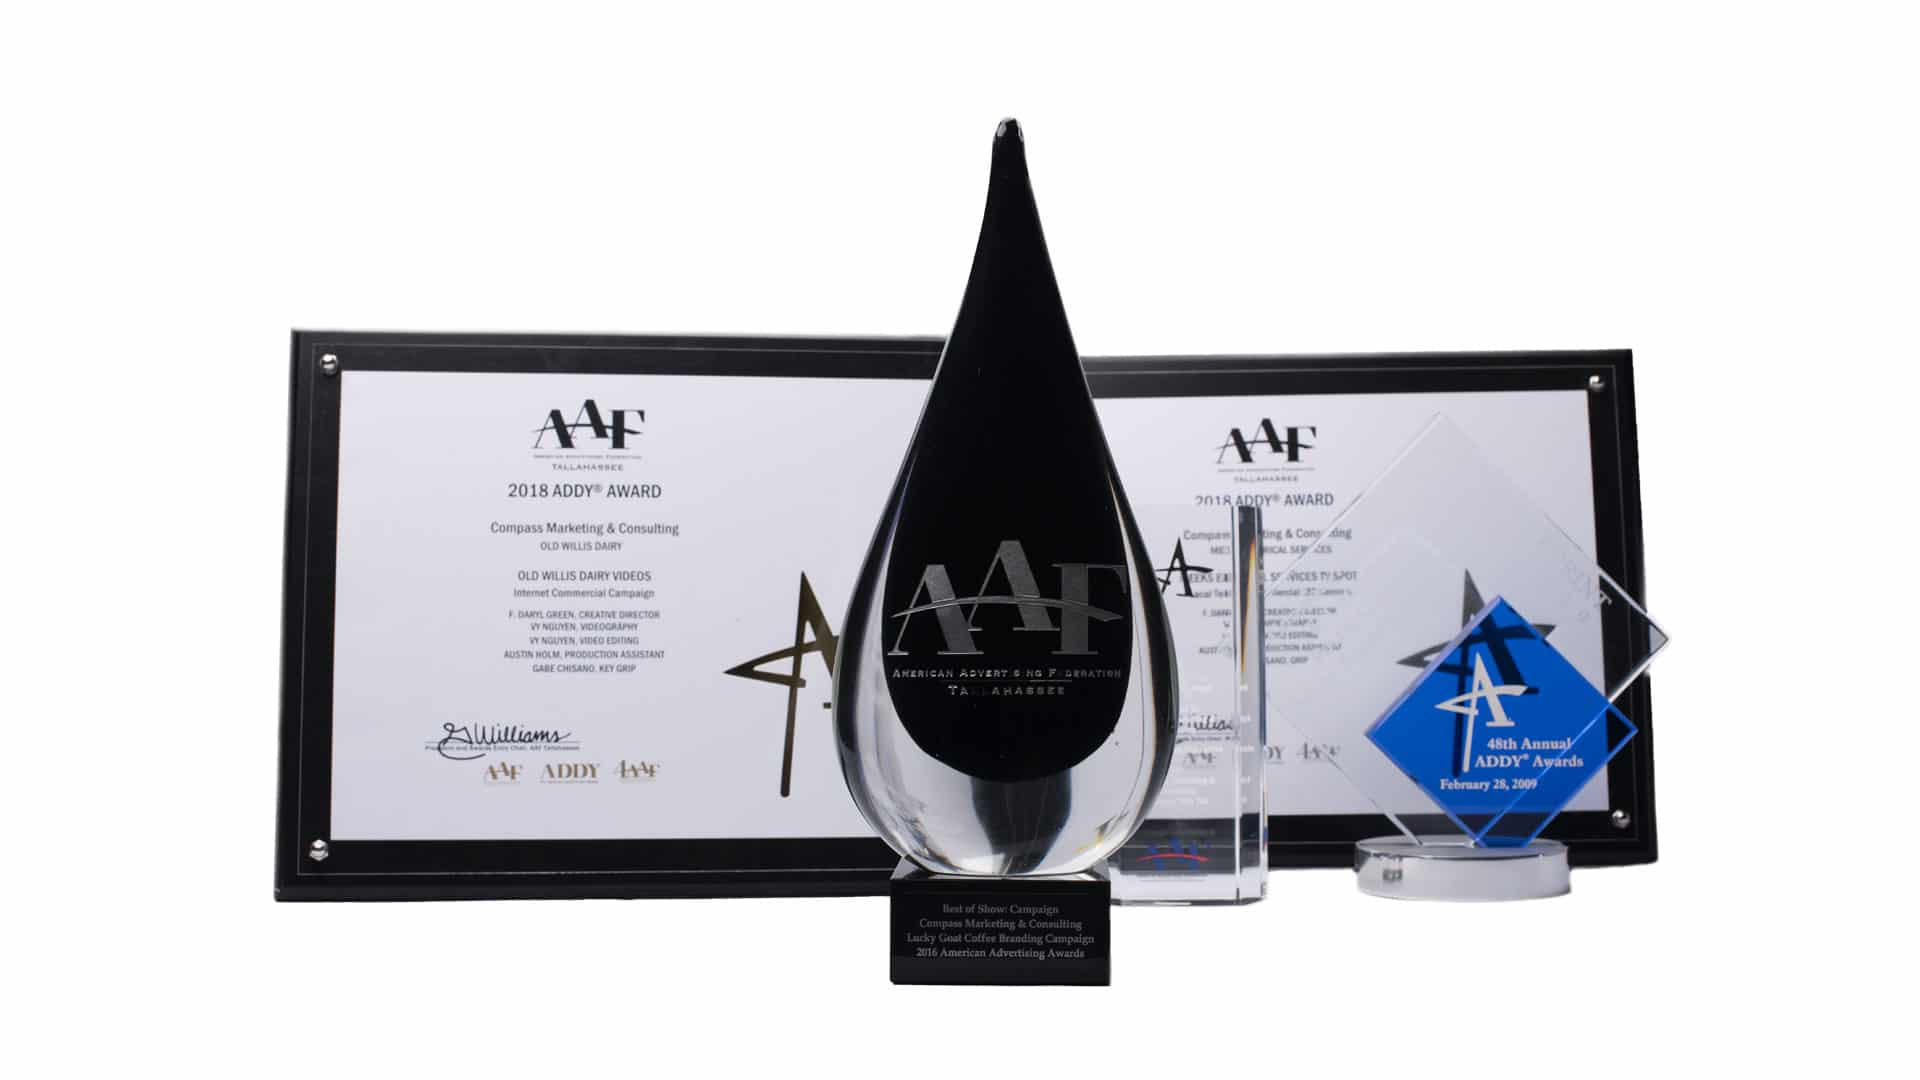 AAF Awards for Compass Marketing